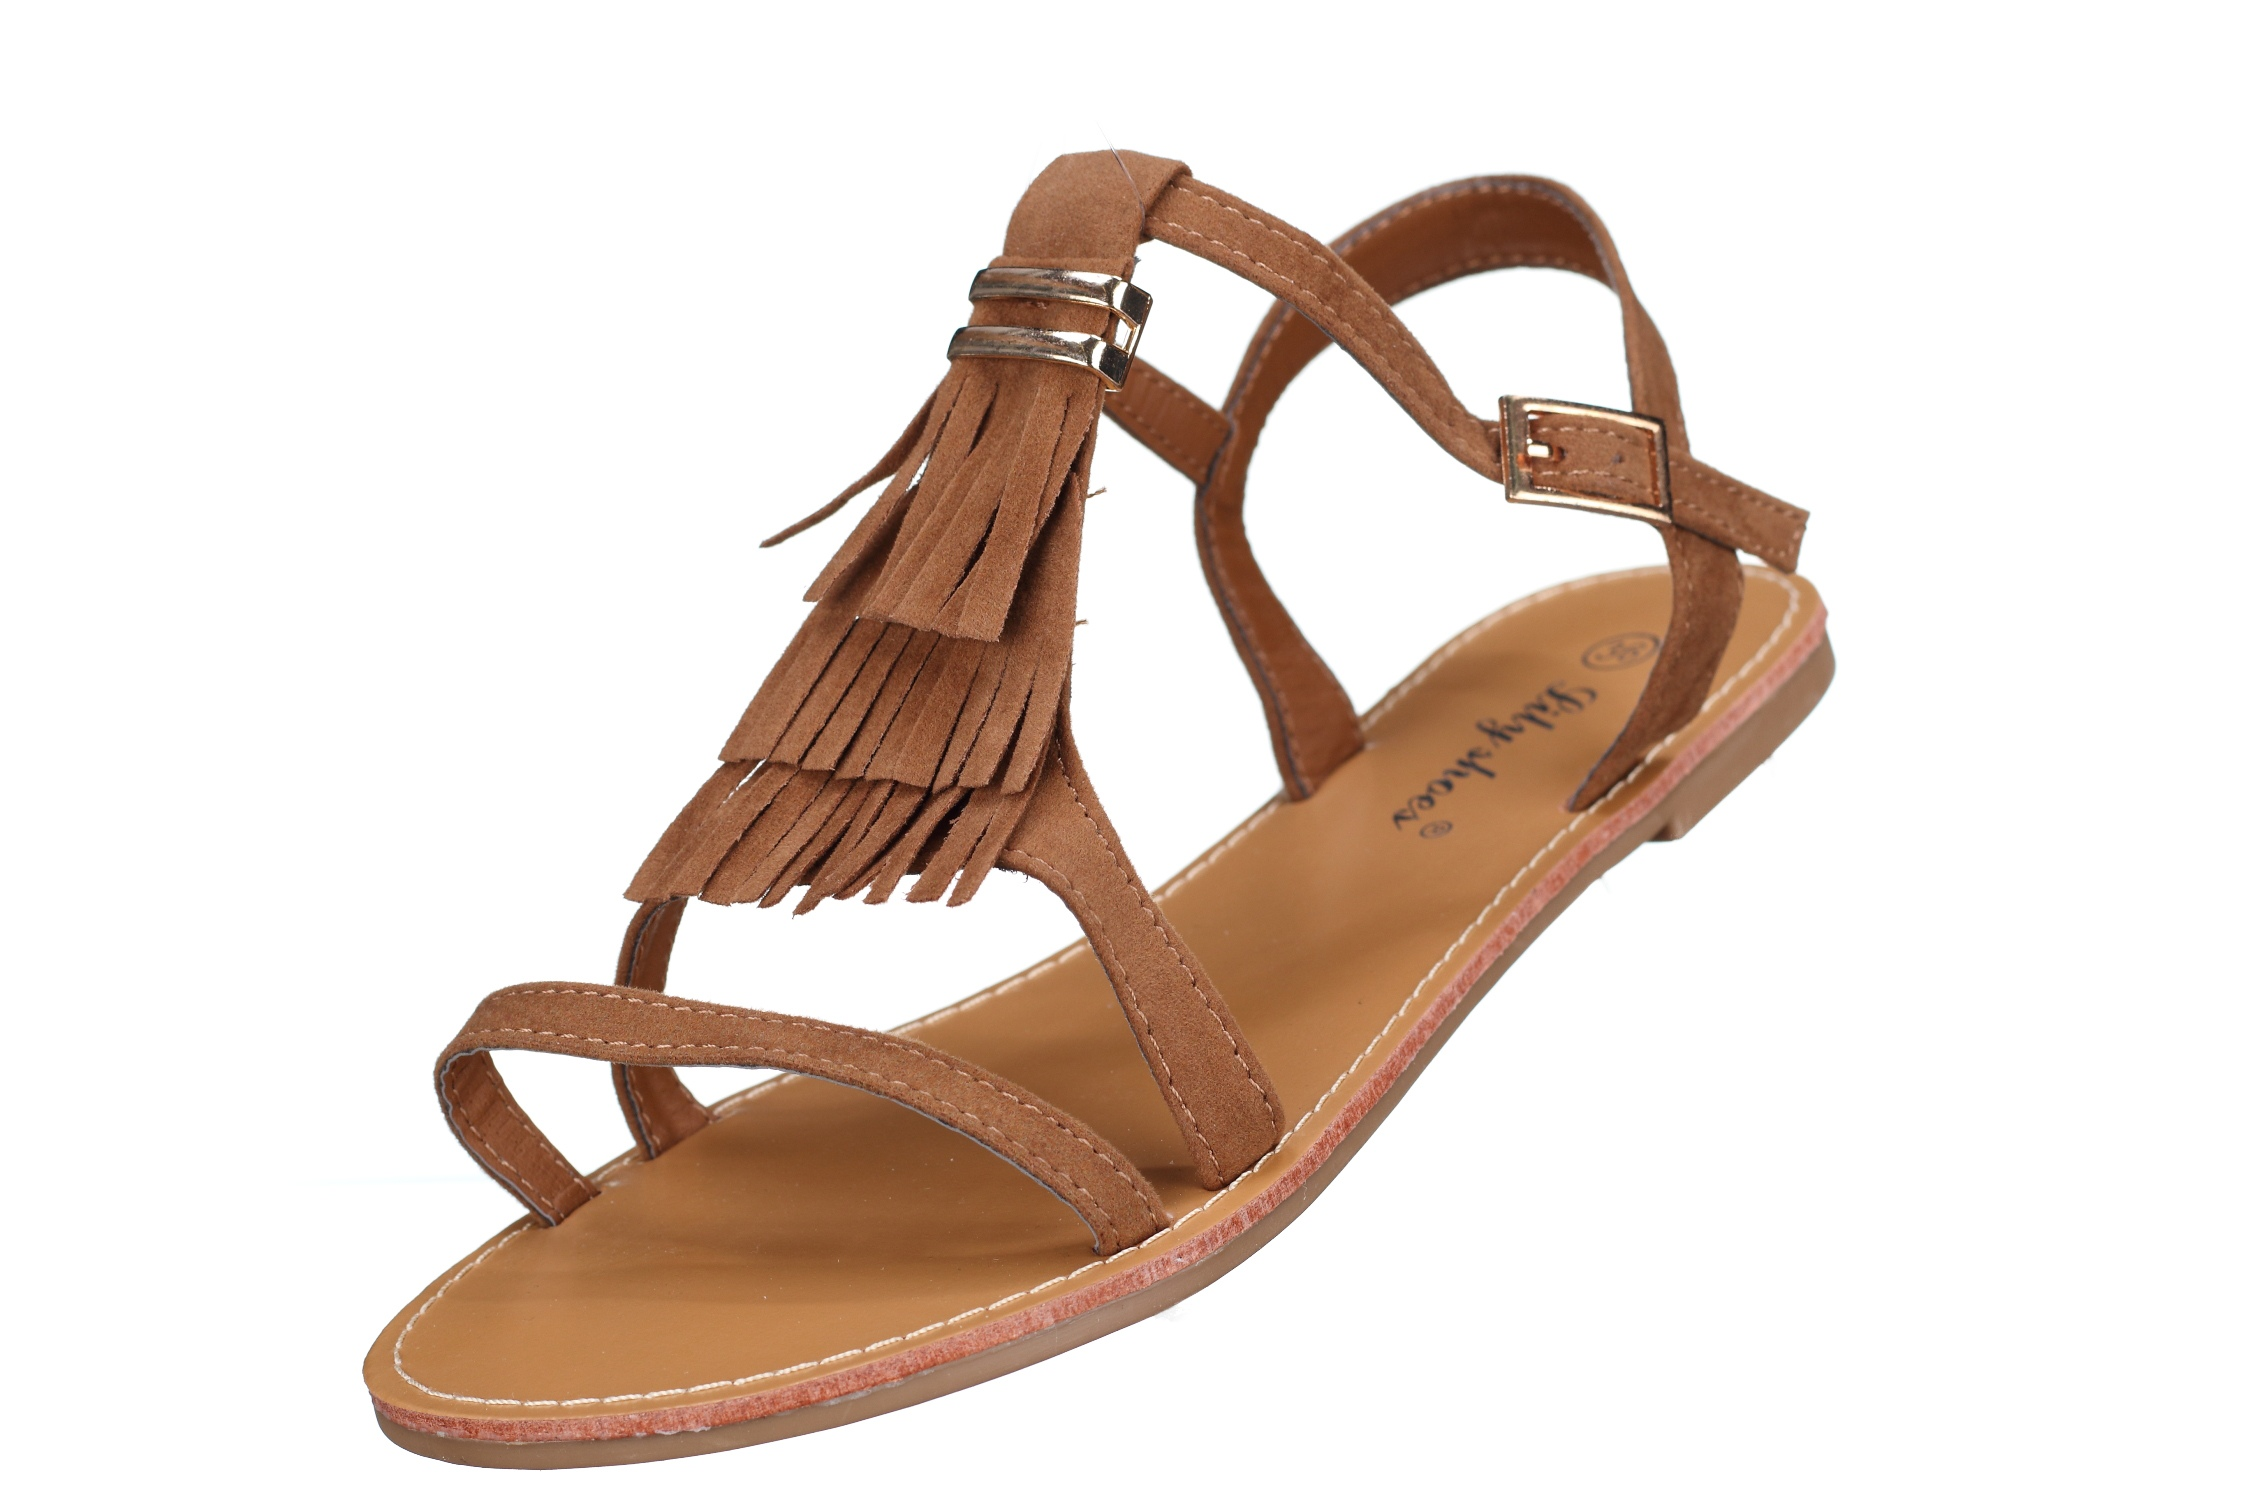 http://www.leadermode.com/123828/lily-shoes-l322-camel.jpg